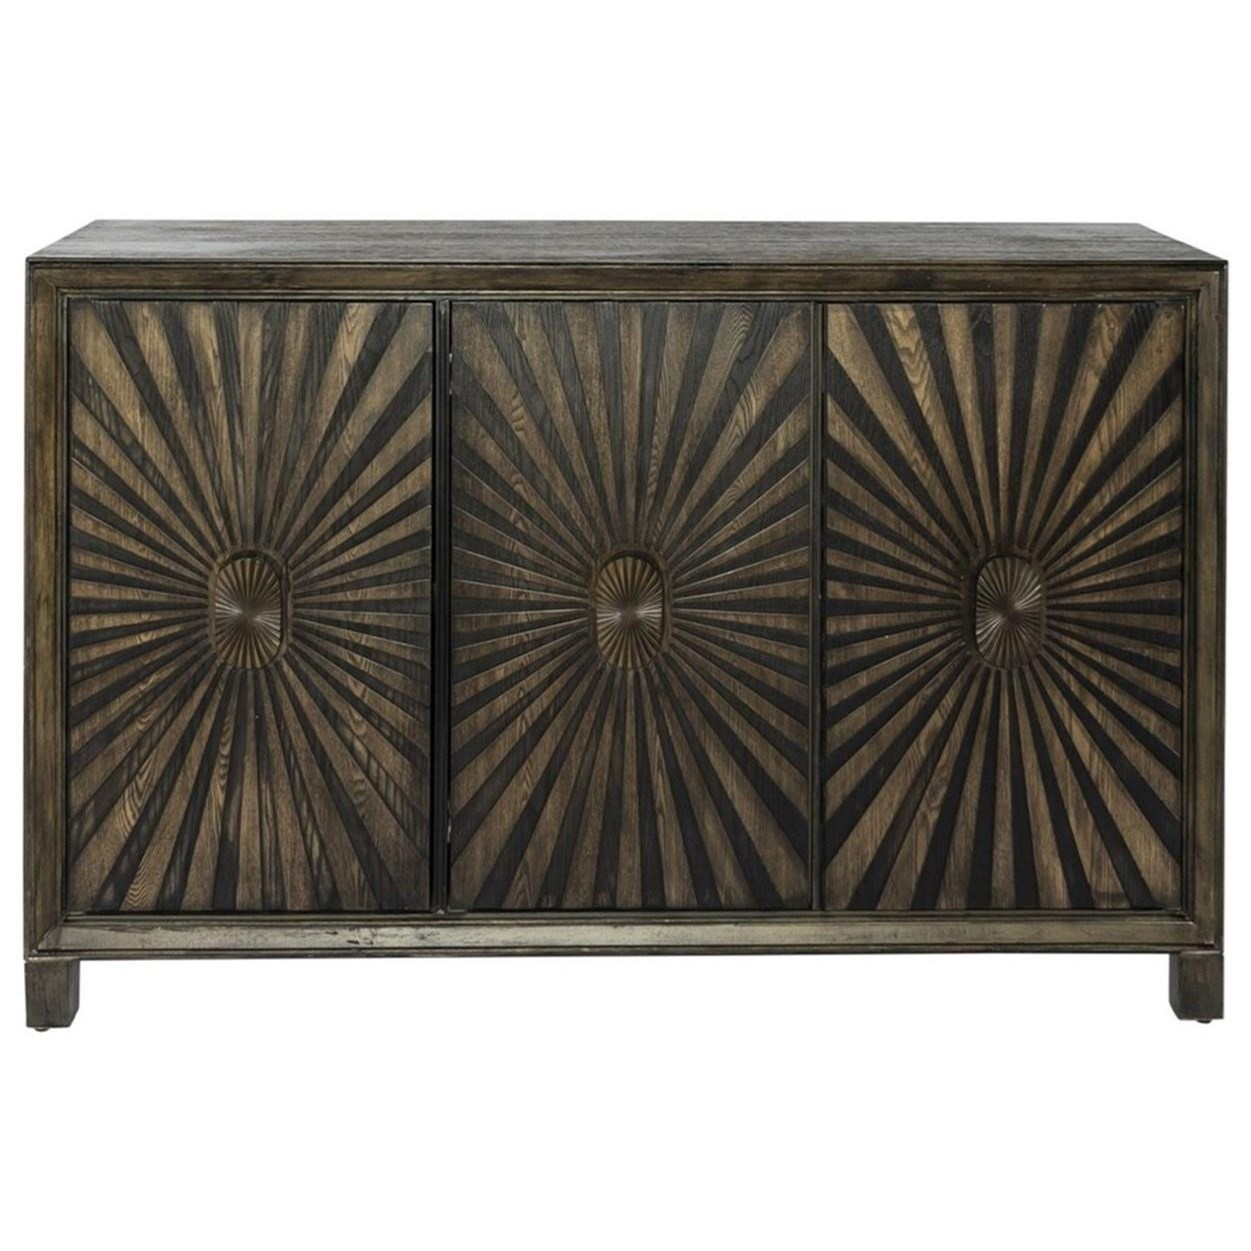 Chaucer 3-Door Accent Cabinet by Libby at Walker's Furniture